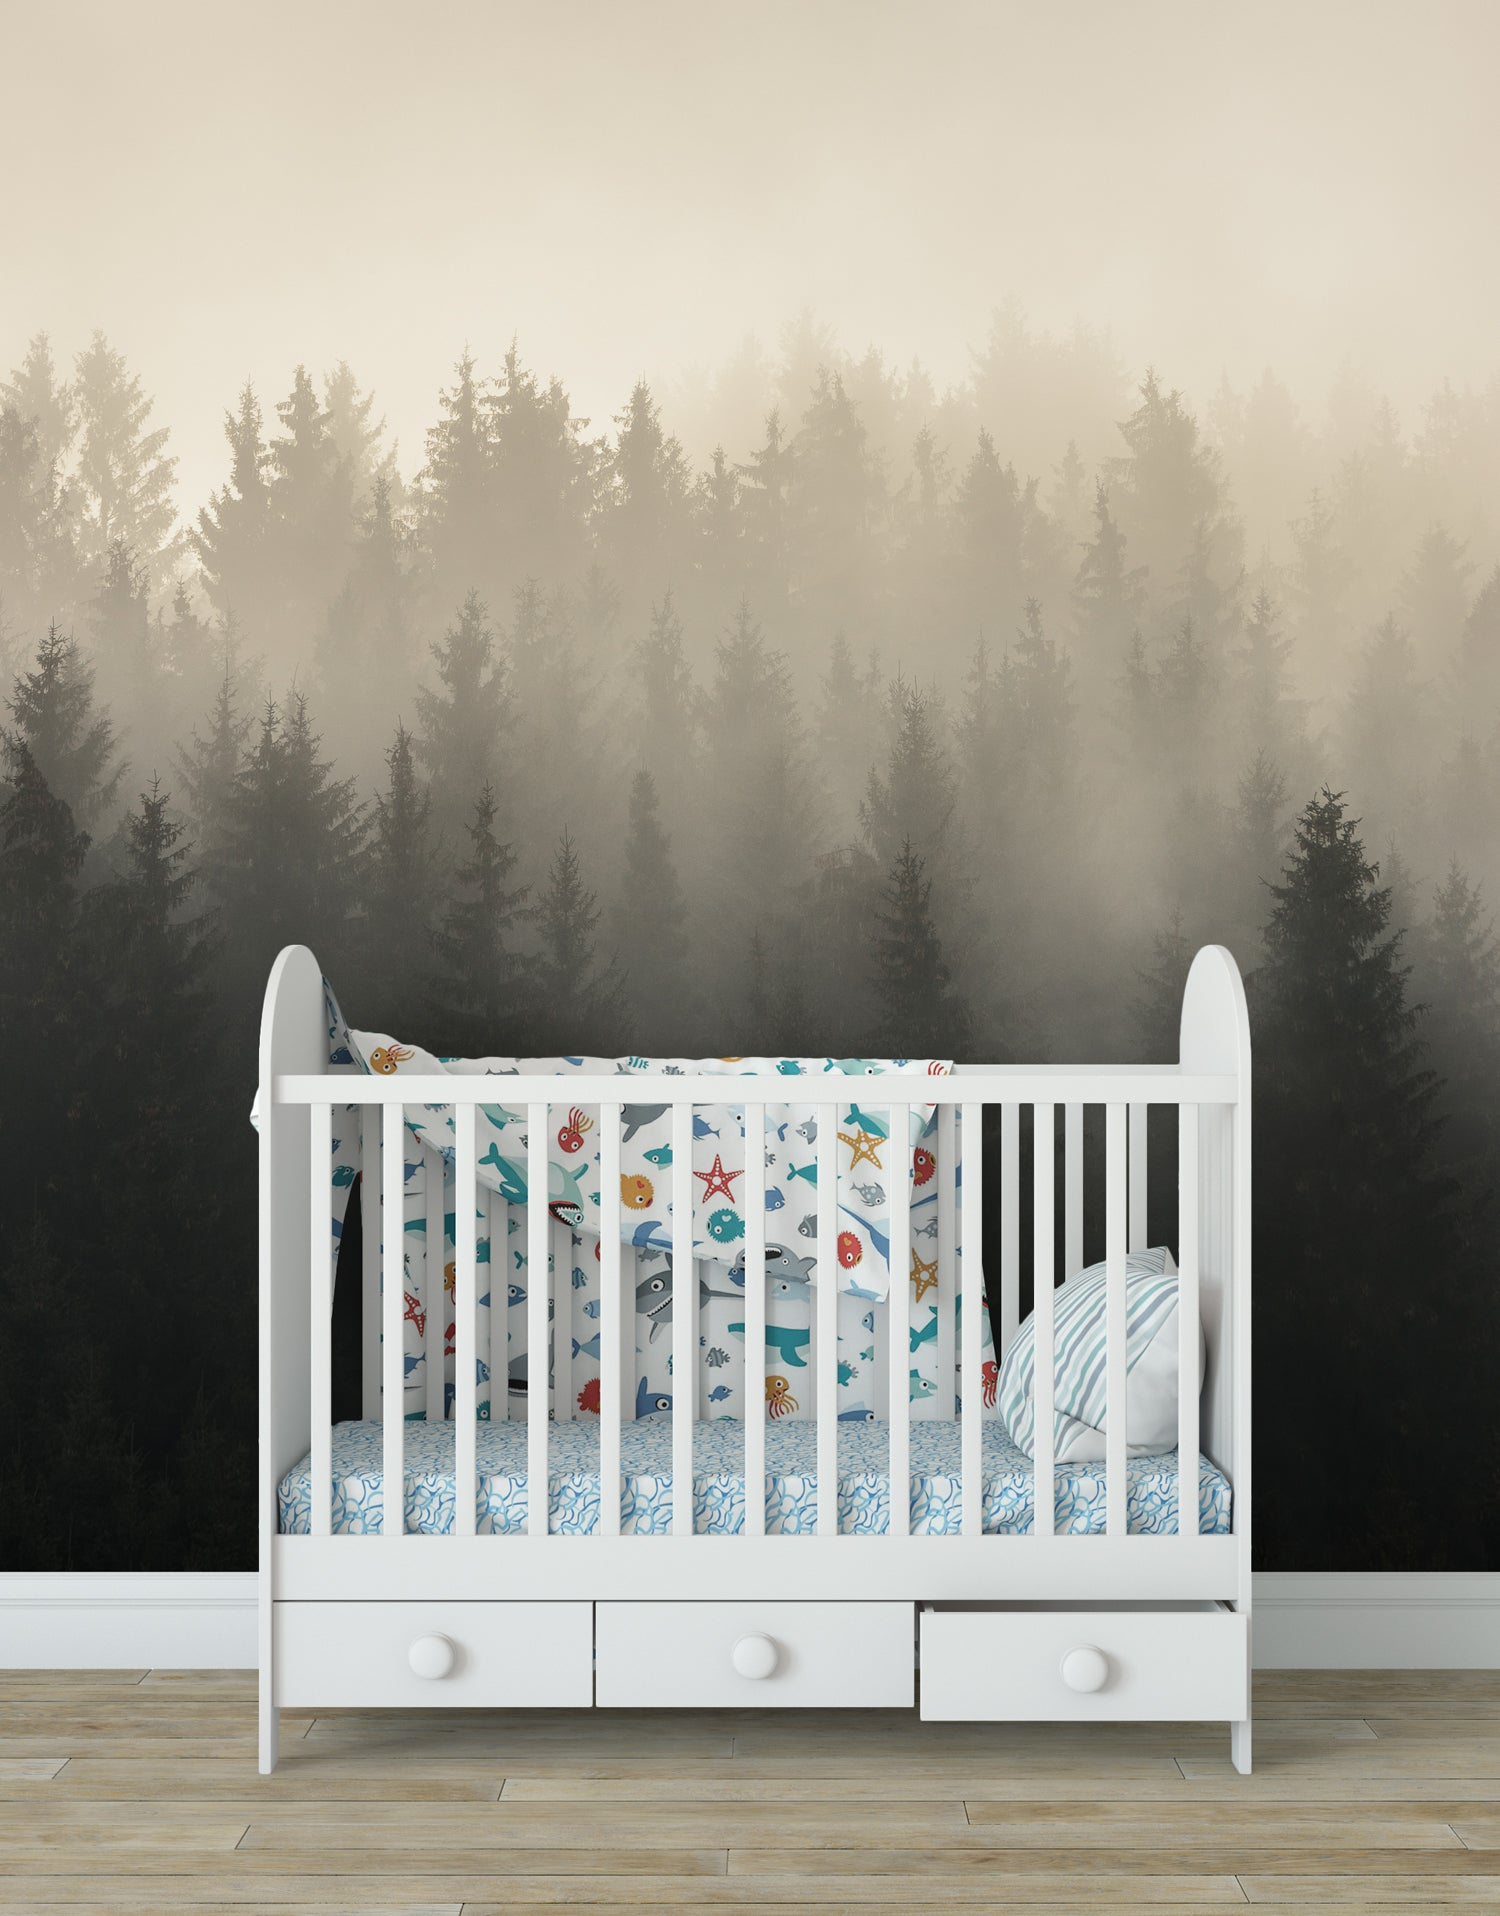 Misty Pine Forest Wall Mural. #6122